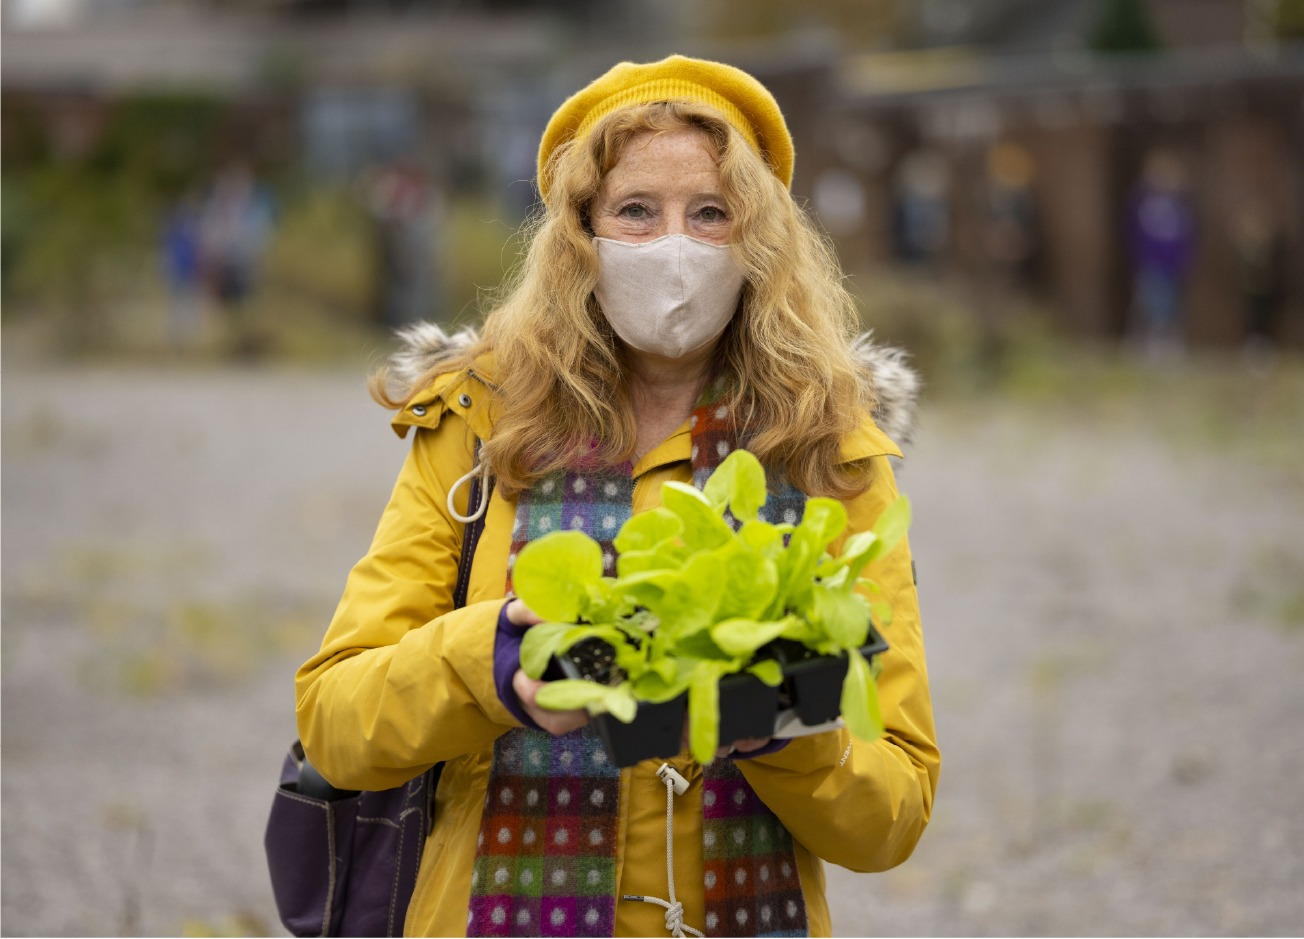 A woman in a yellow coat and hat and wearing a mask holds a tray of salad.